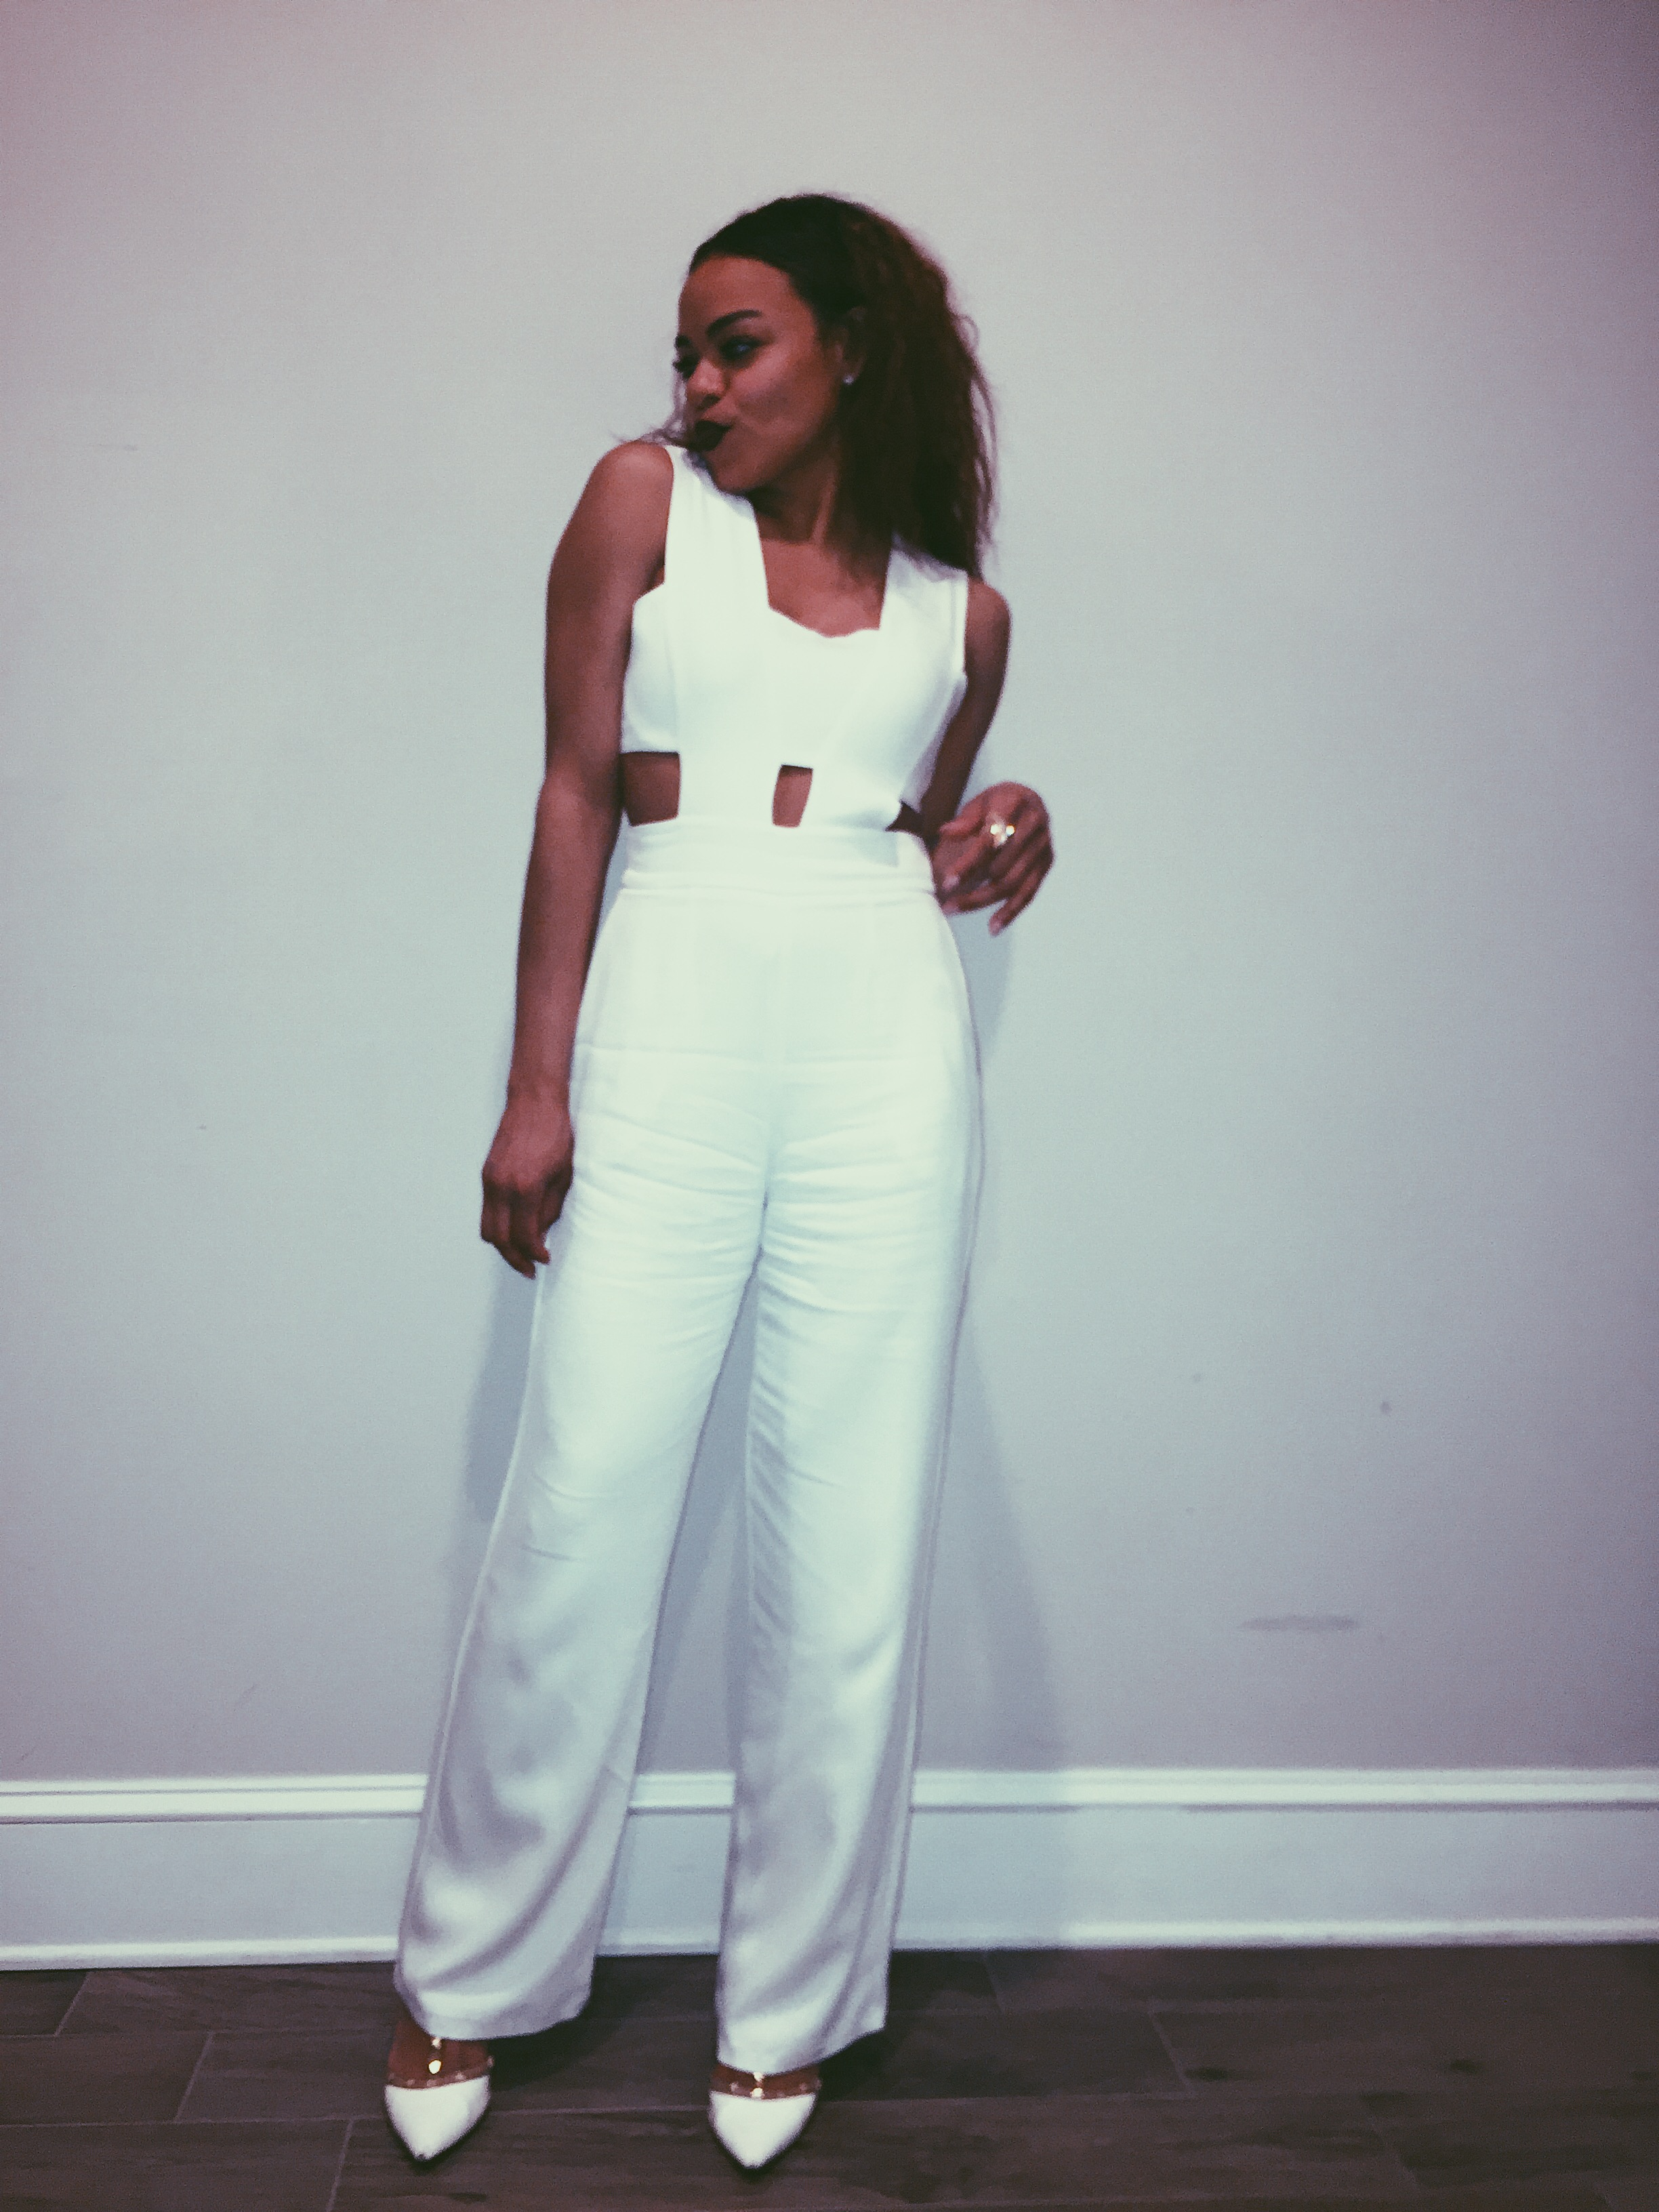 Wearing: Karina Grimaldi jumpsuit and BCBG heels